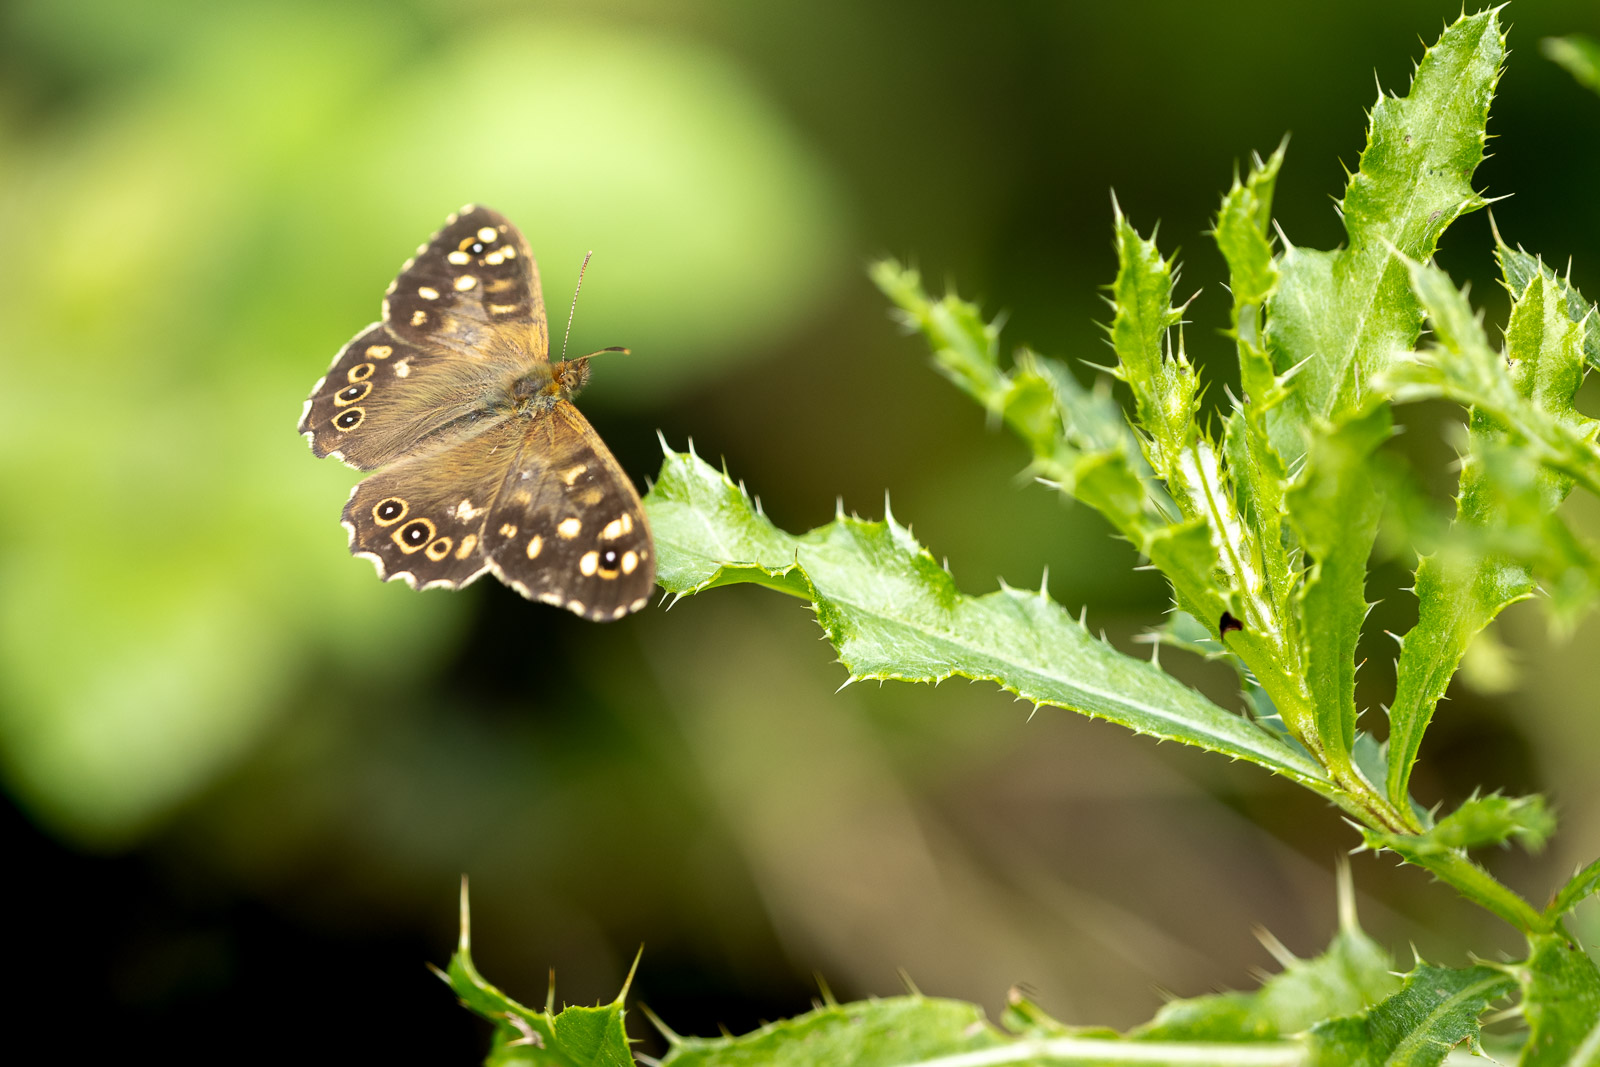 Speckled Wood (Pararge aegeria) - Lynchcombe, Mendip Hills, Somerset, UK. ID BR53699